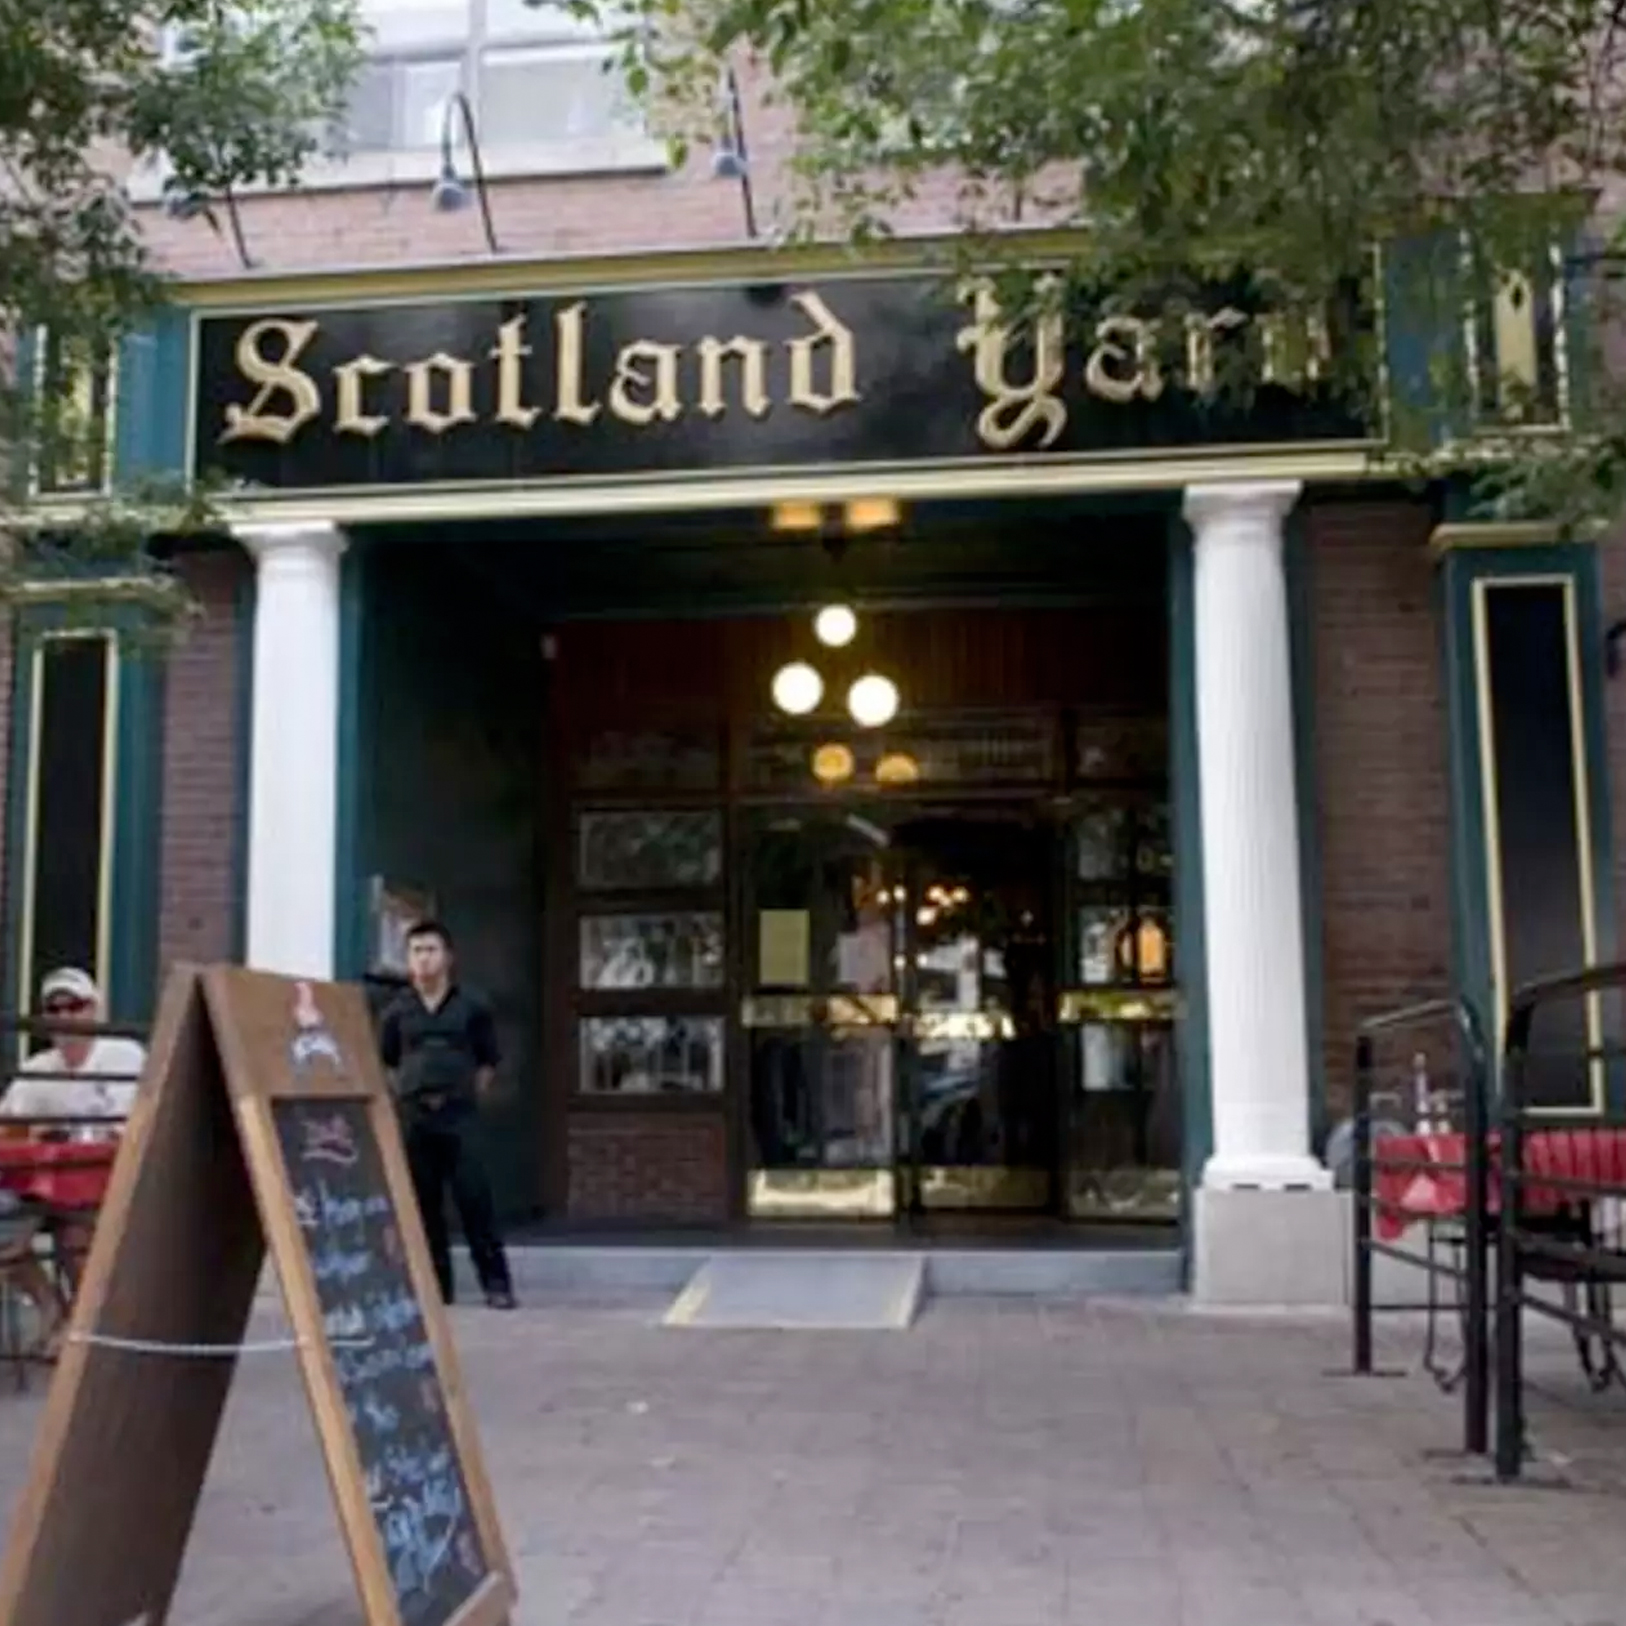 SCOTLAND YARD BAR